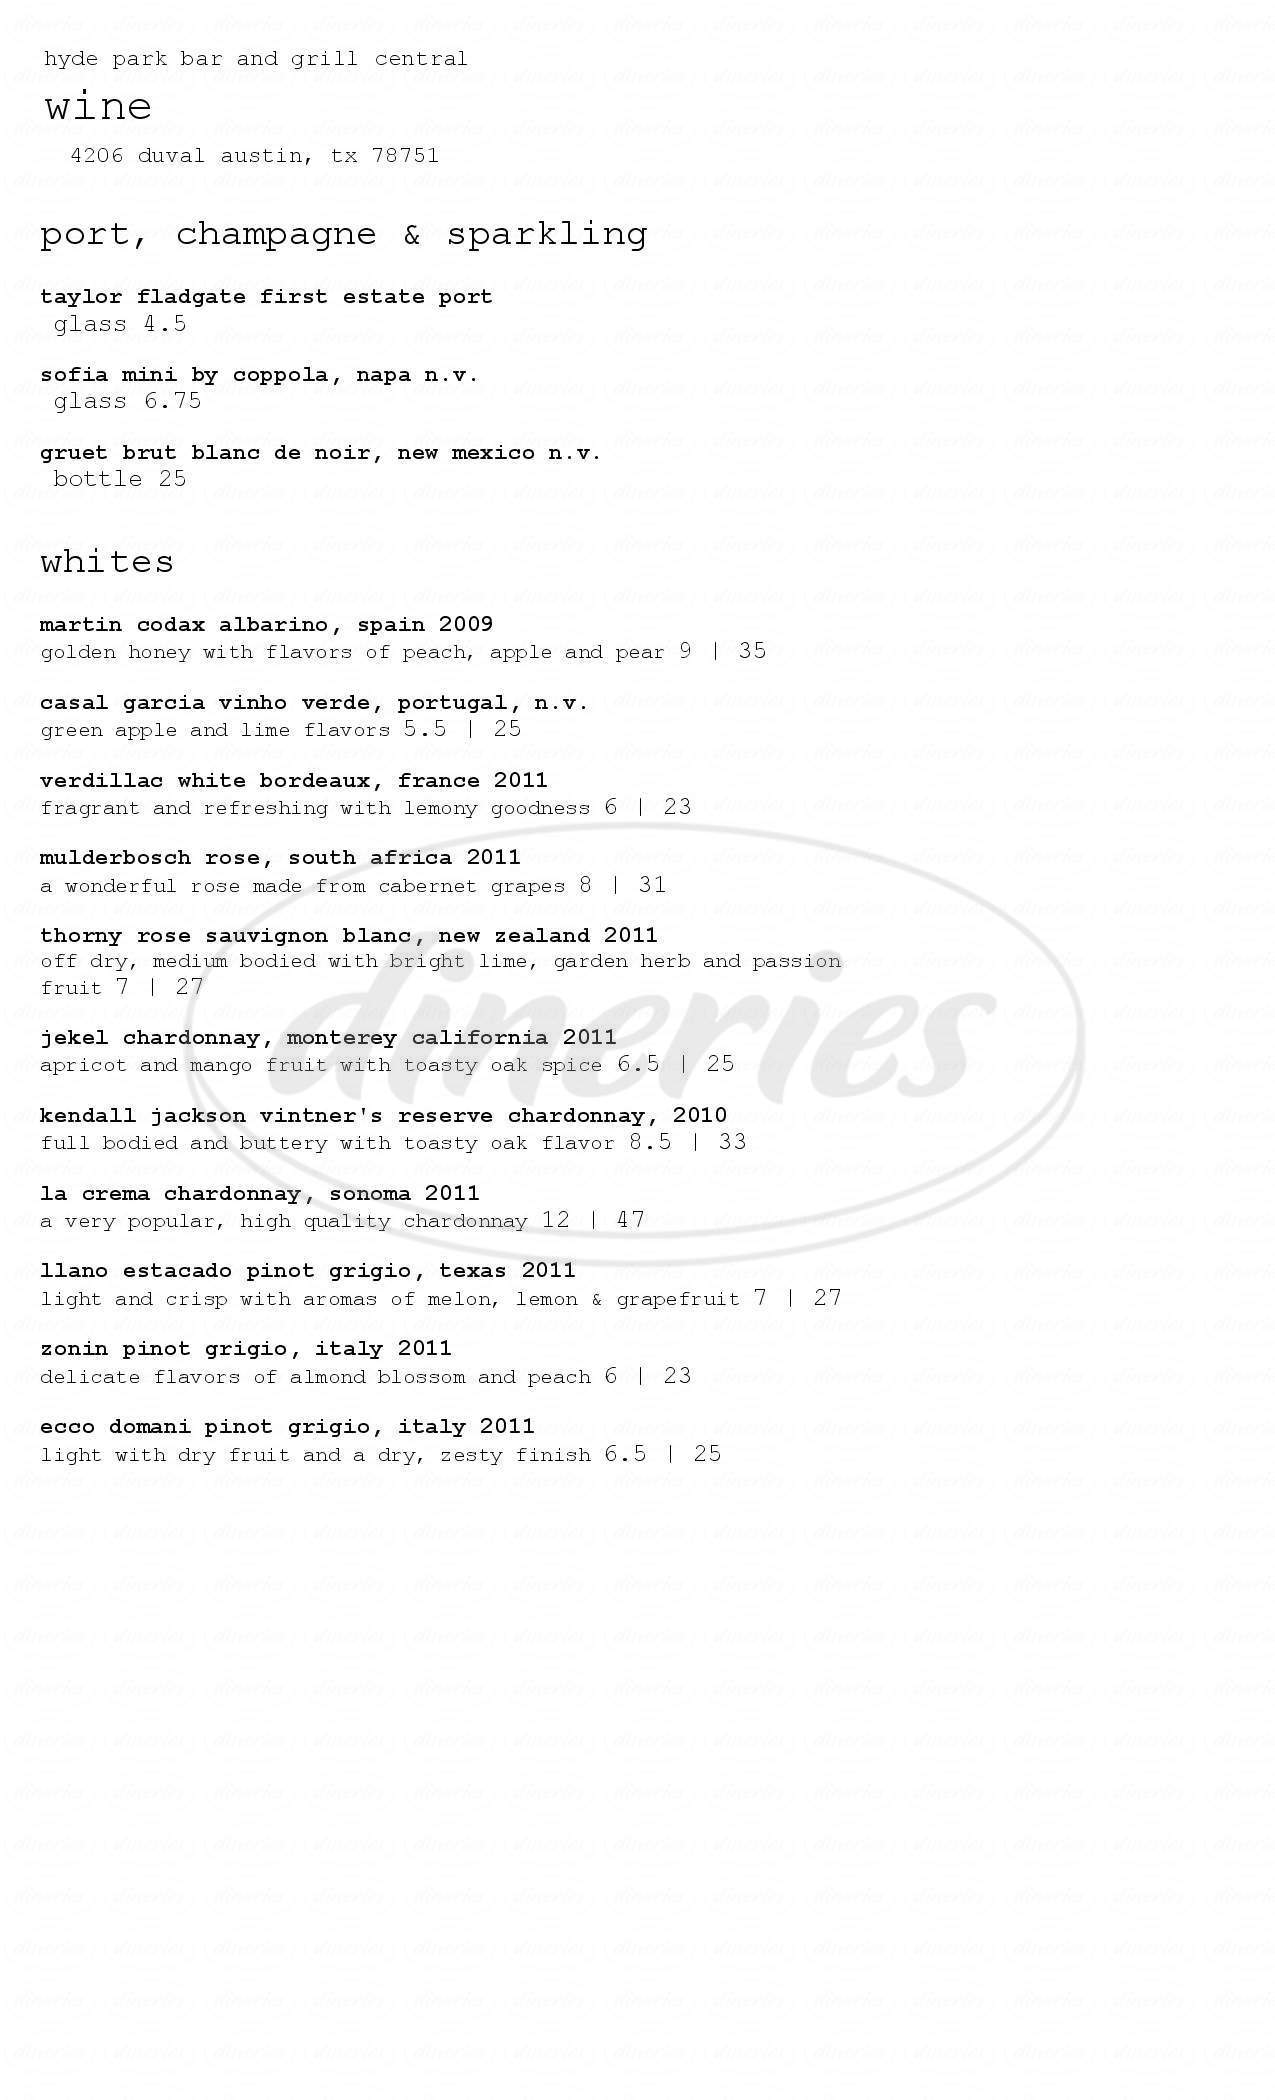 menu for Hyde Park Bar & Grill Central